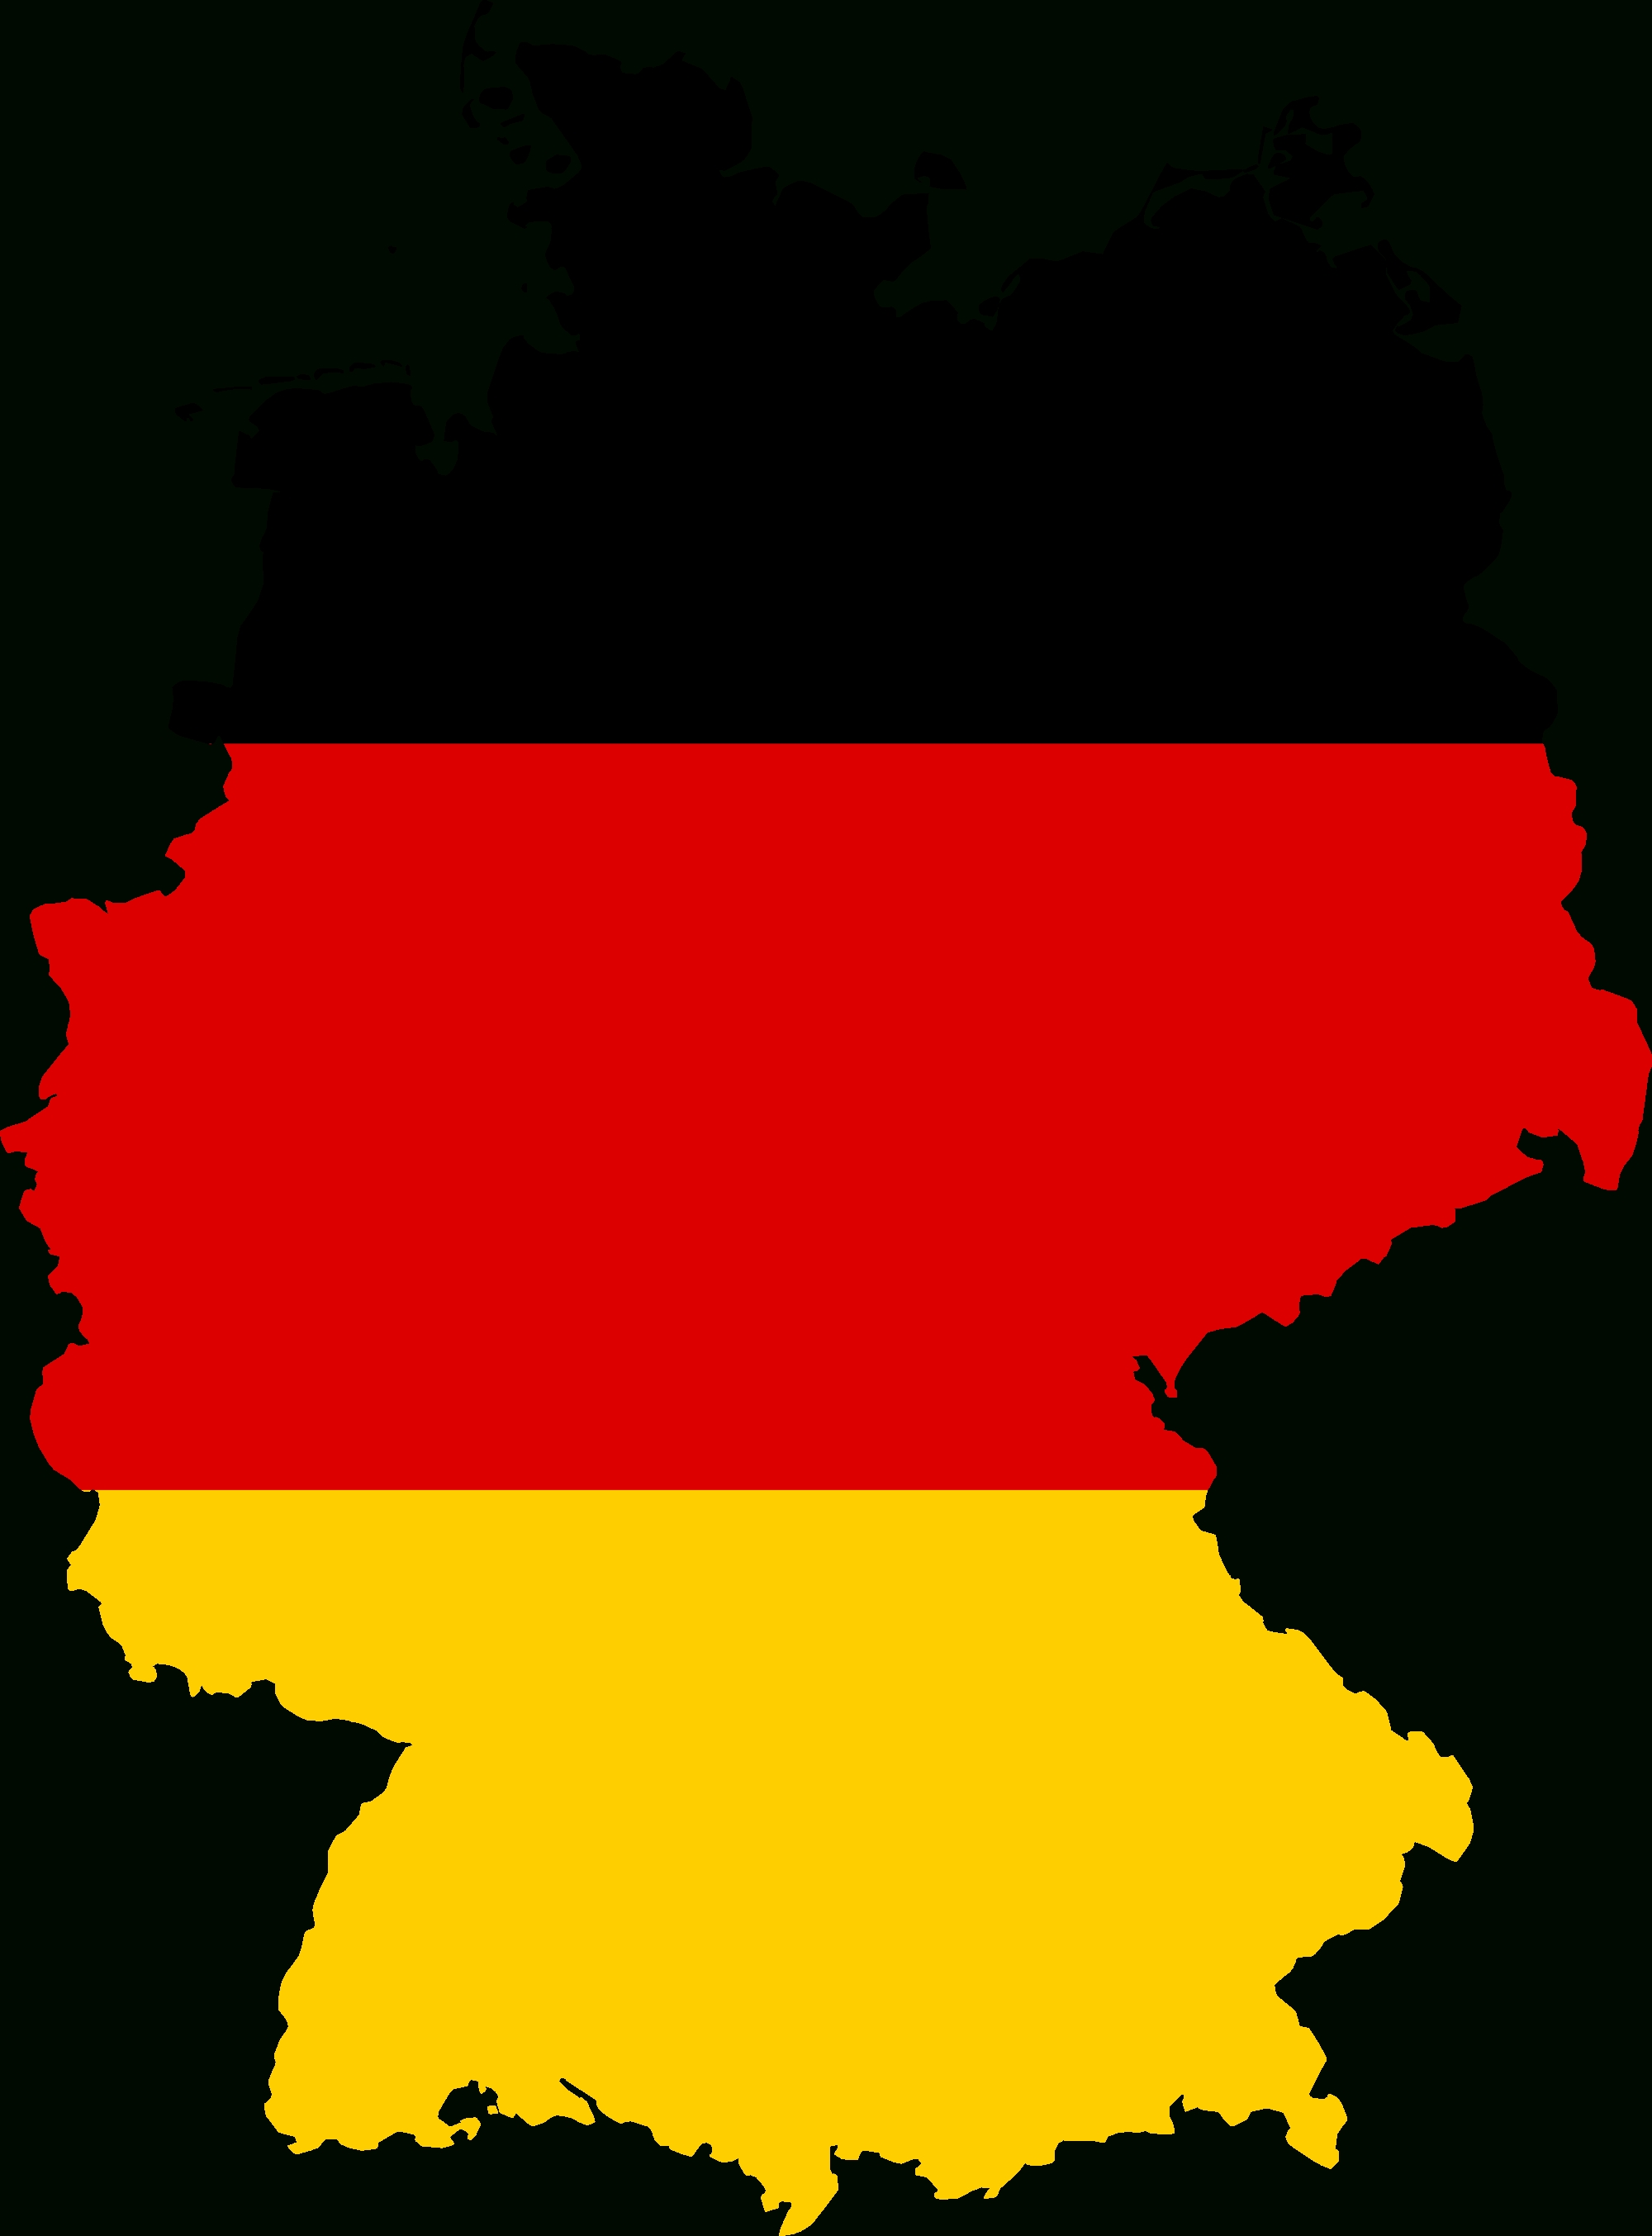 Yellow Germany, Clip Art, West Germany, World Map #48874 - Free inside West Germany World Map